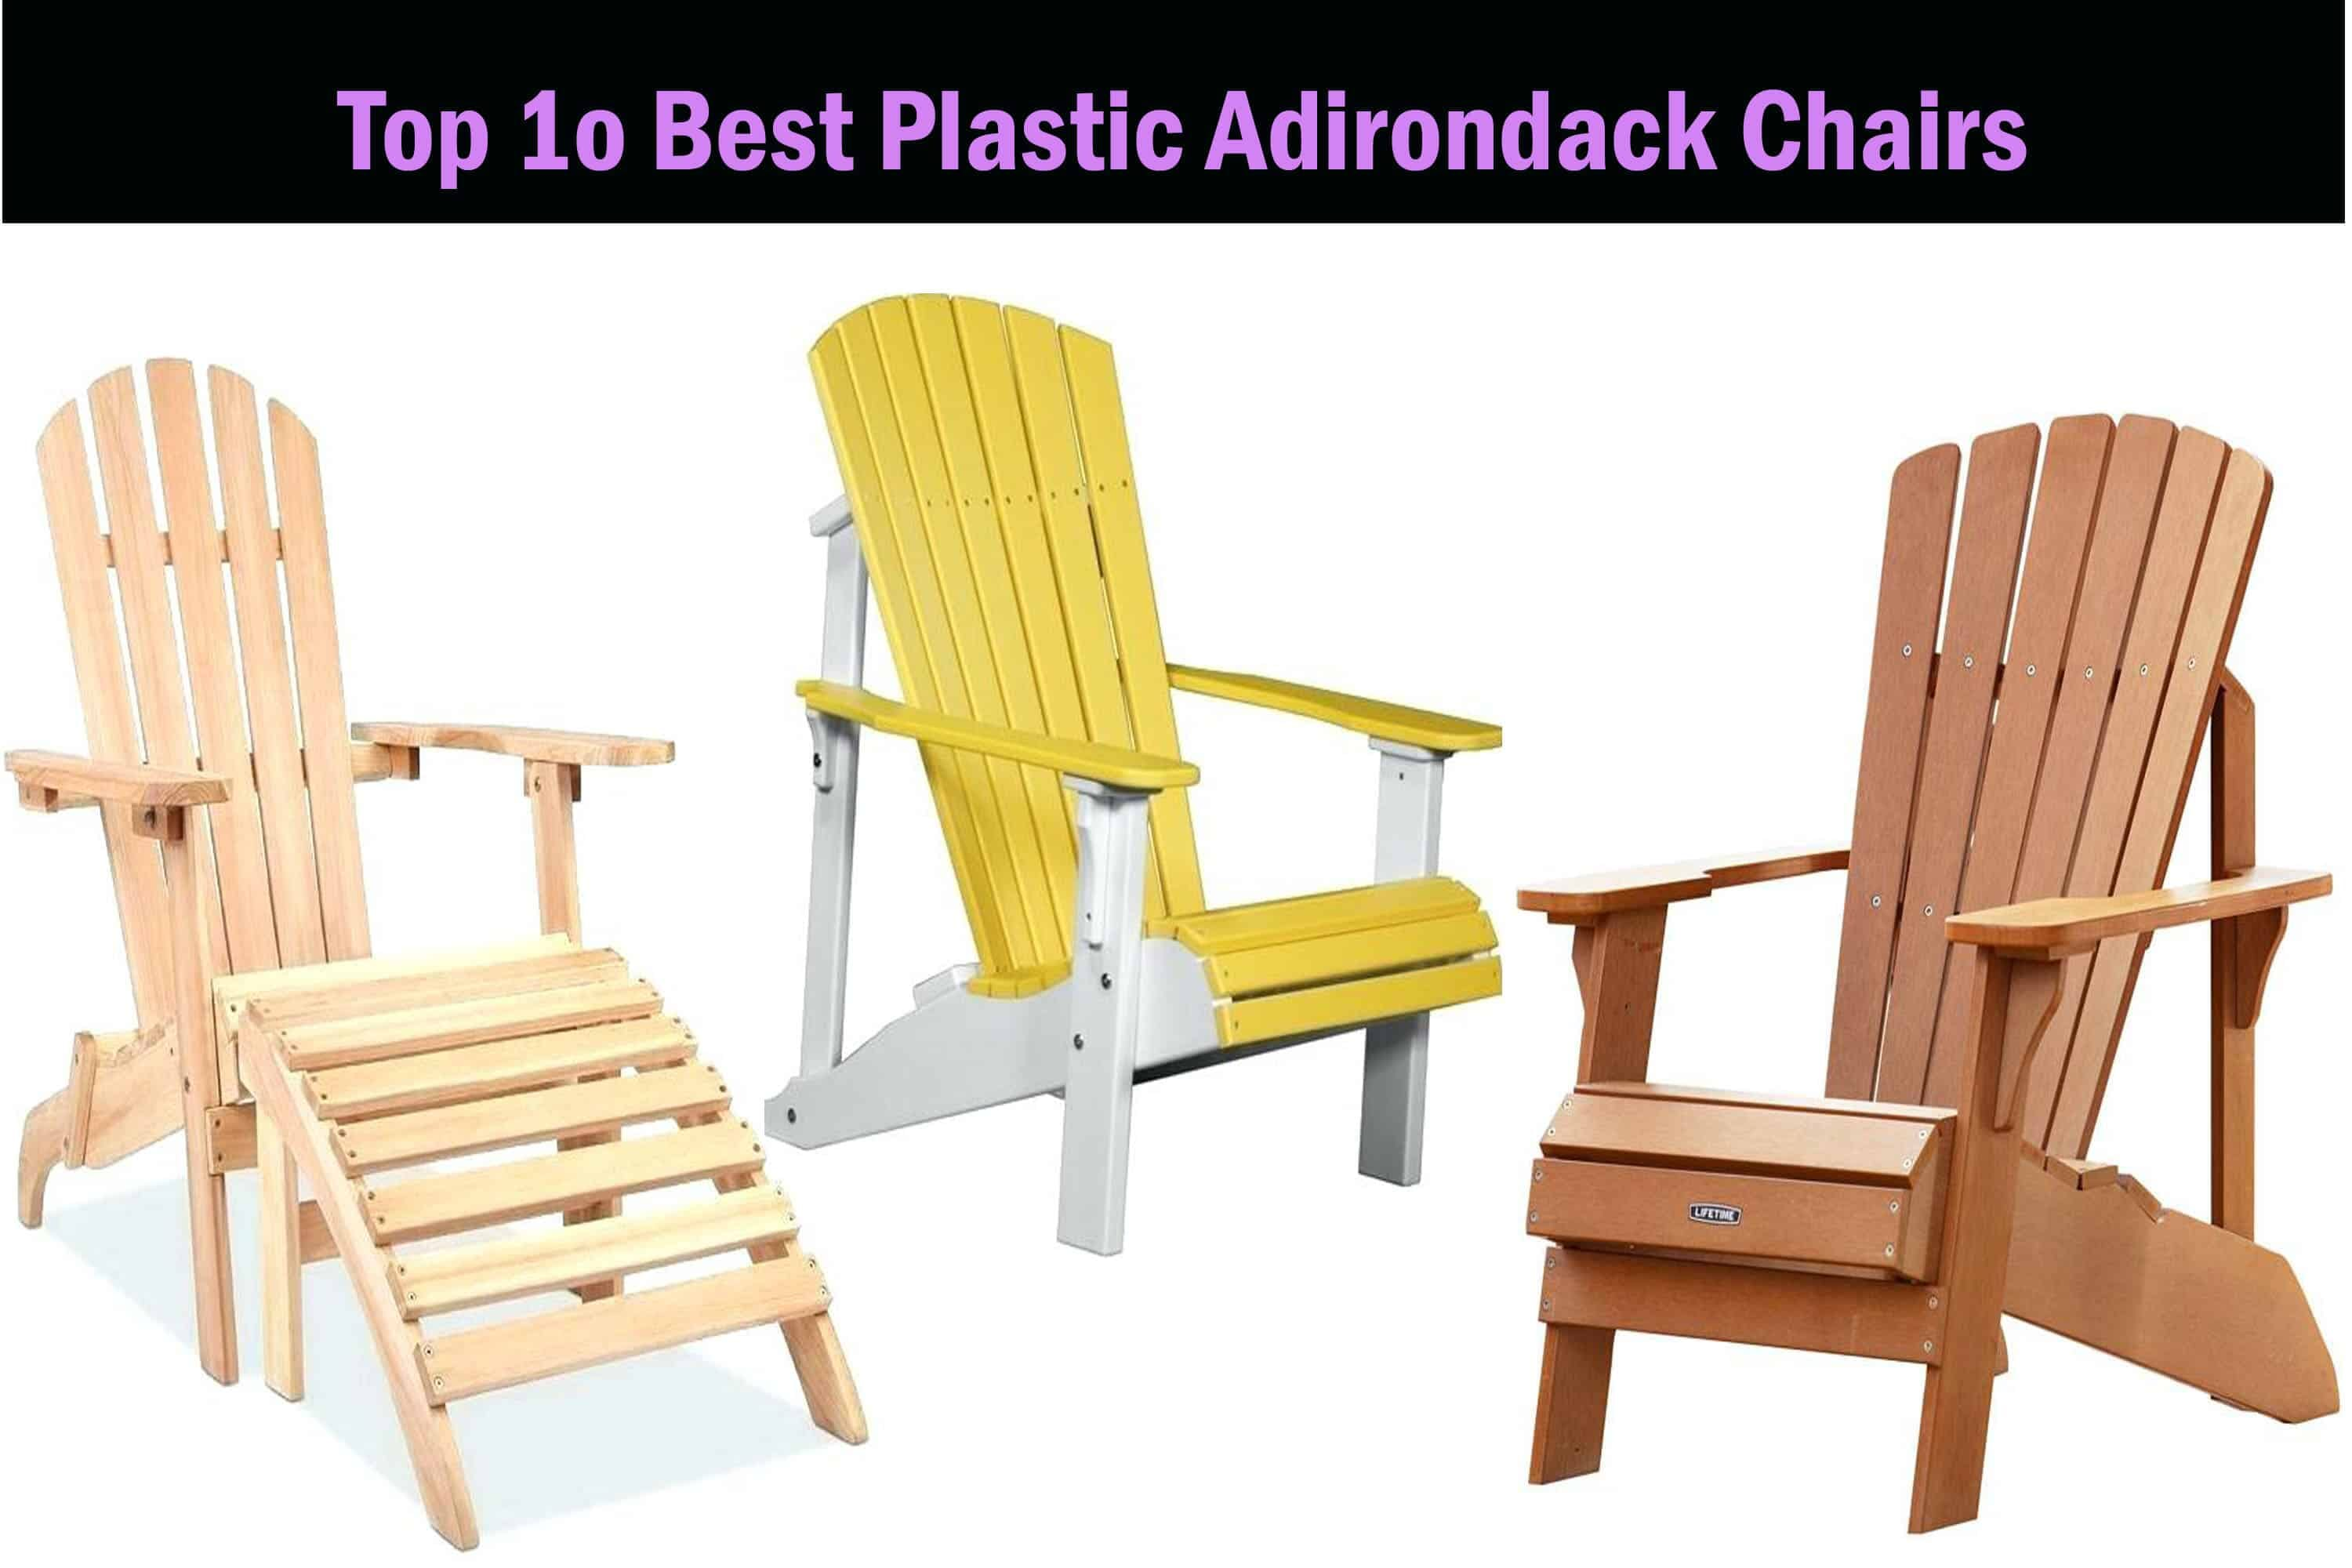 Super Table Top 10 Best Plastic Adirondack Chairs Review 2020 Machost Co Dining Chair Design Ideas Machostcouk